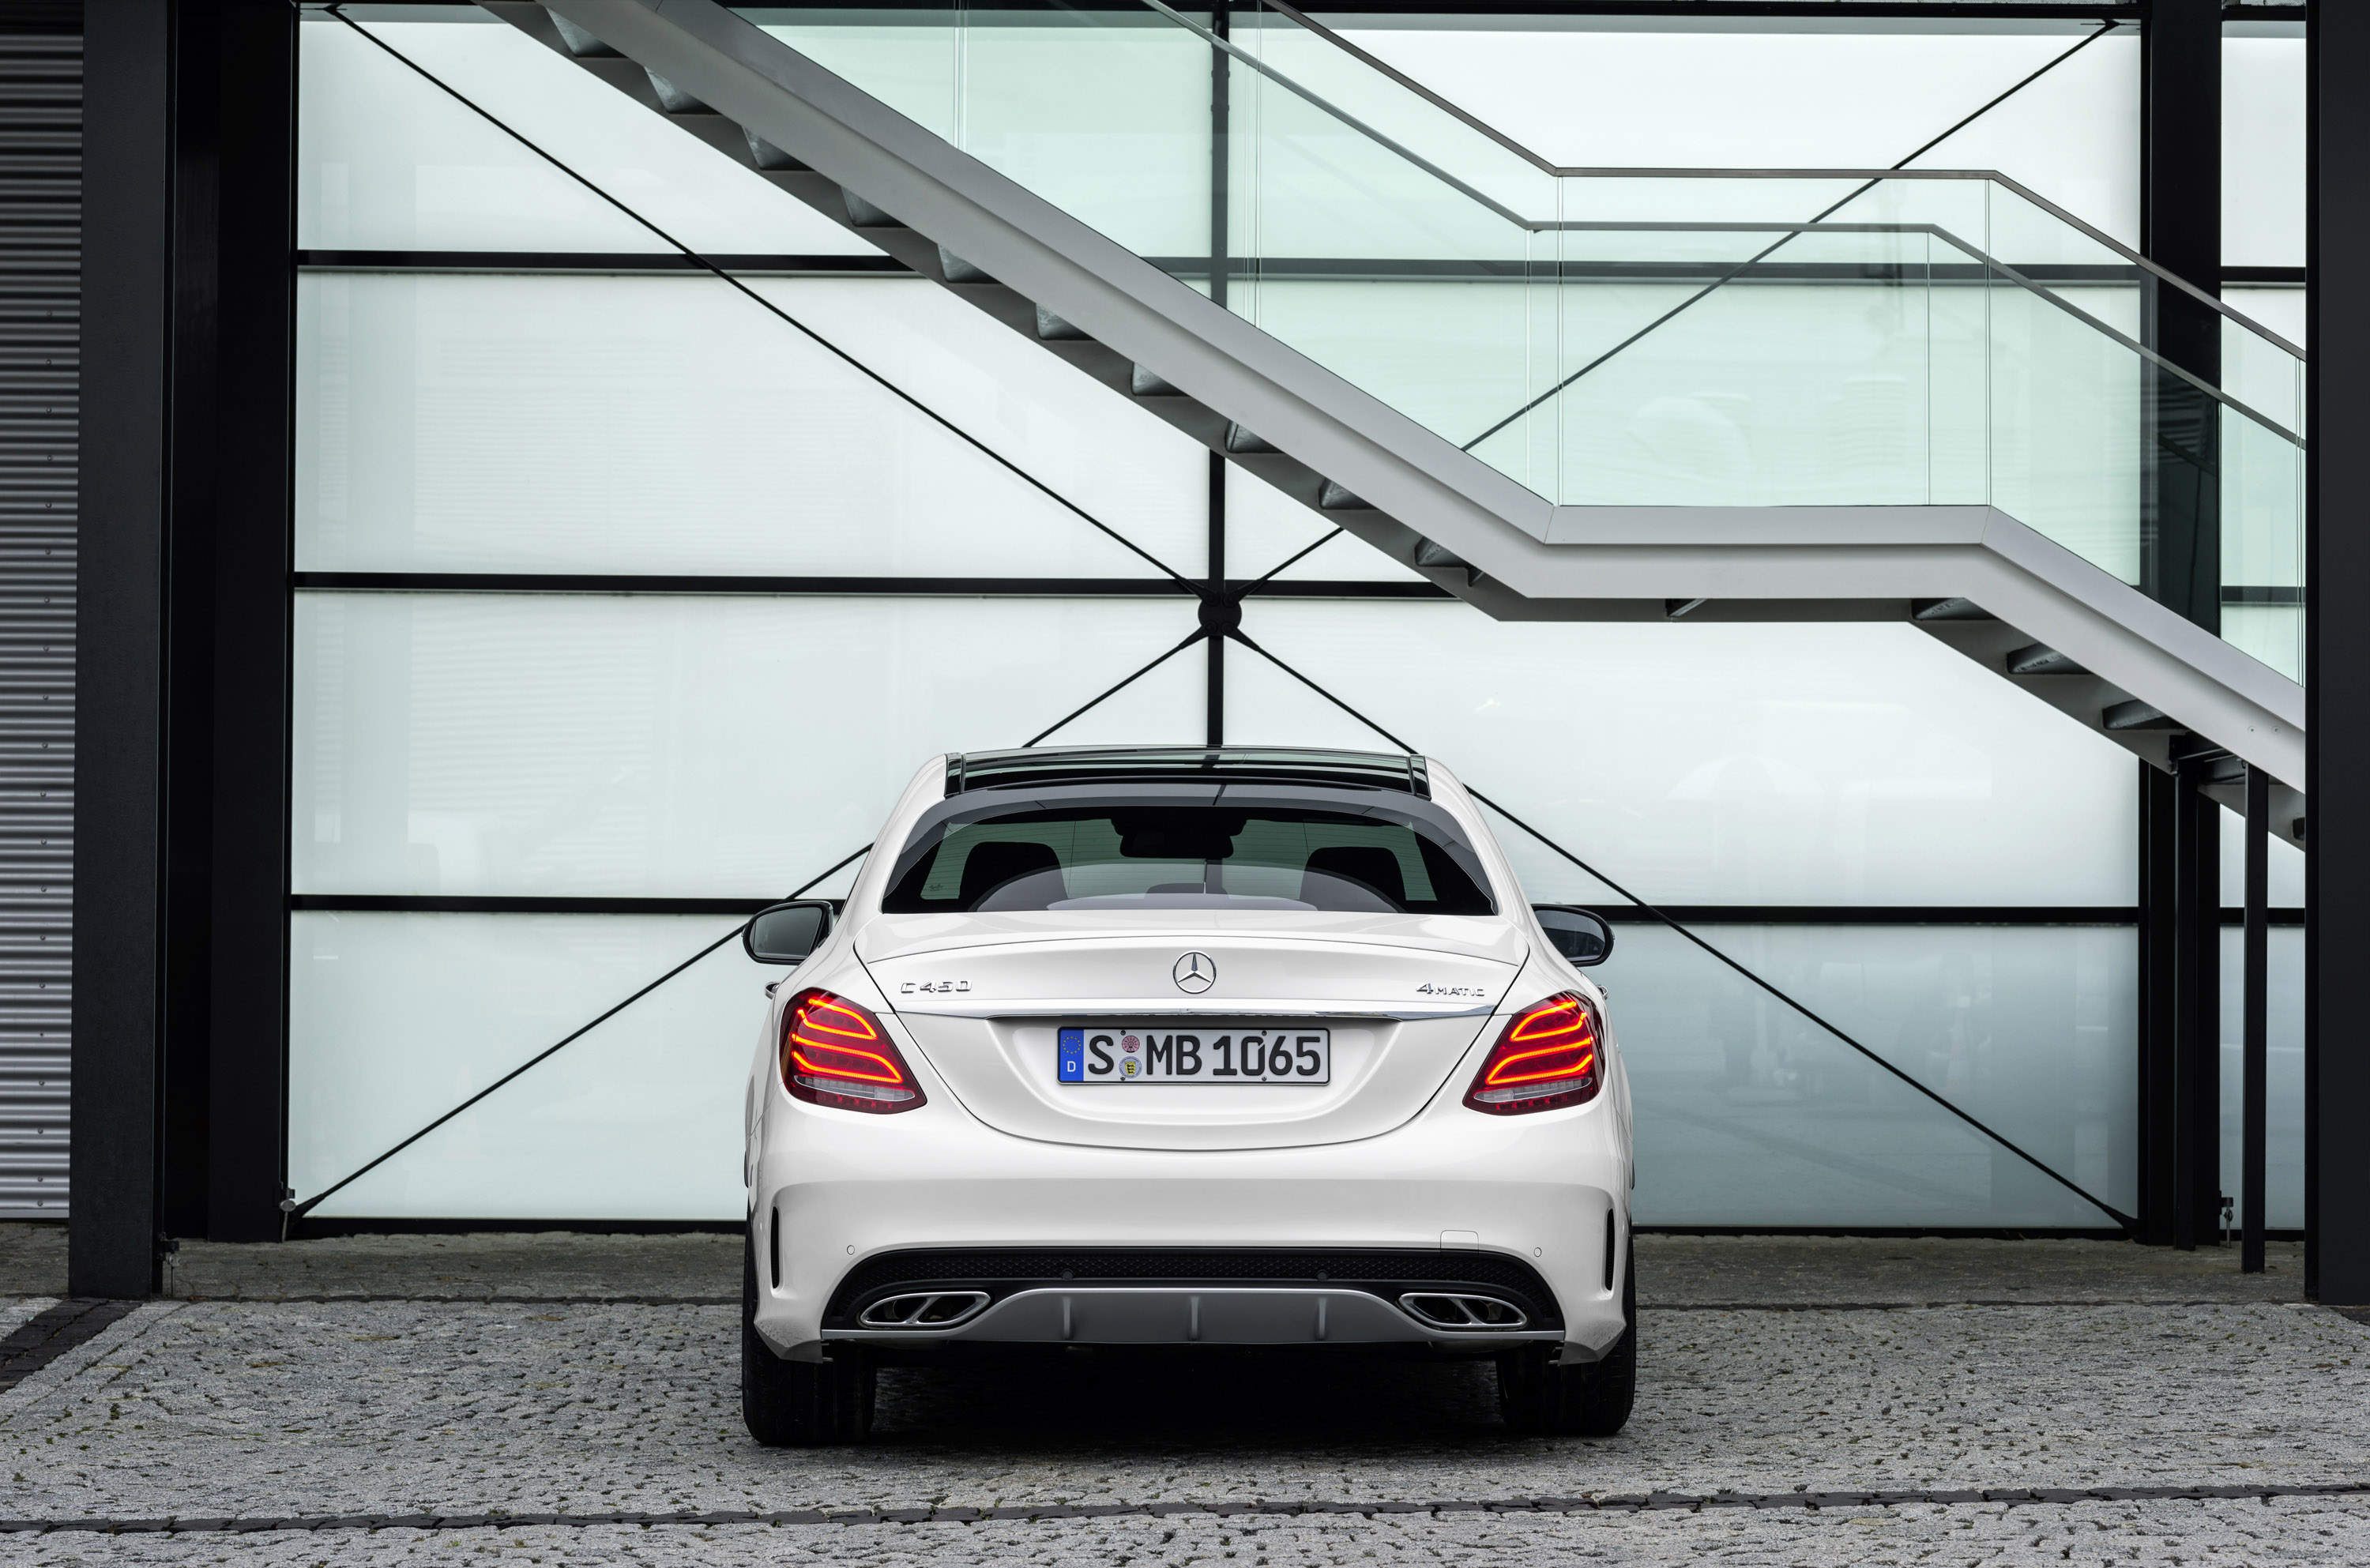 https://www.automobilesreview.com/img/2016-mercedes-benz-c450-amg-sport/2016-mercedes-benz-c450-amg-sport-10.jpg